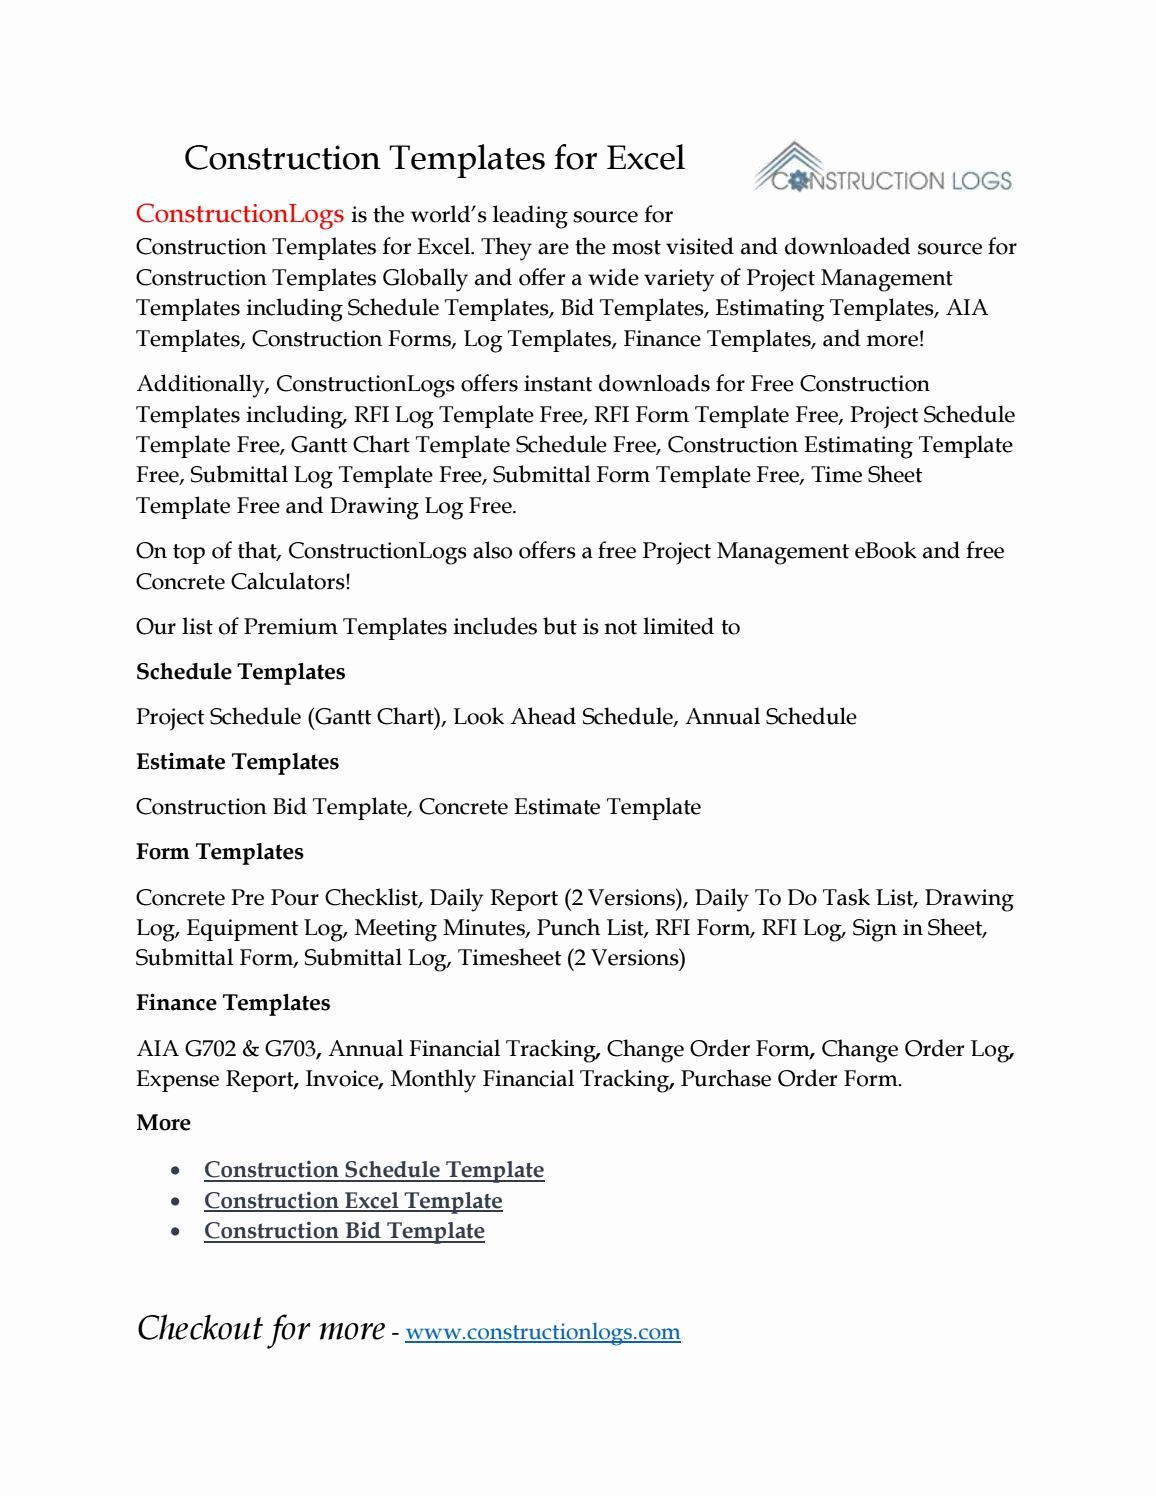 Construction Submittal form Template Fresh Construction Templates for Excel by Robert Stille issuu